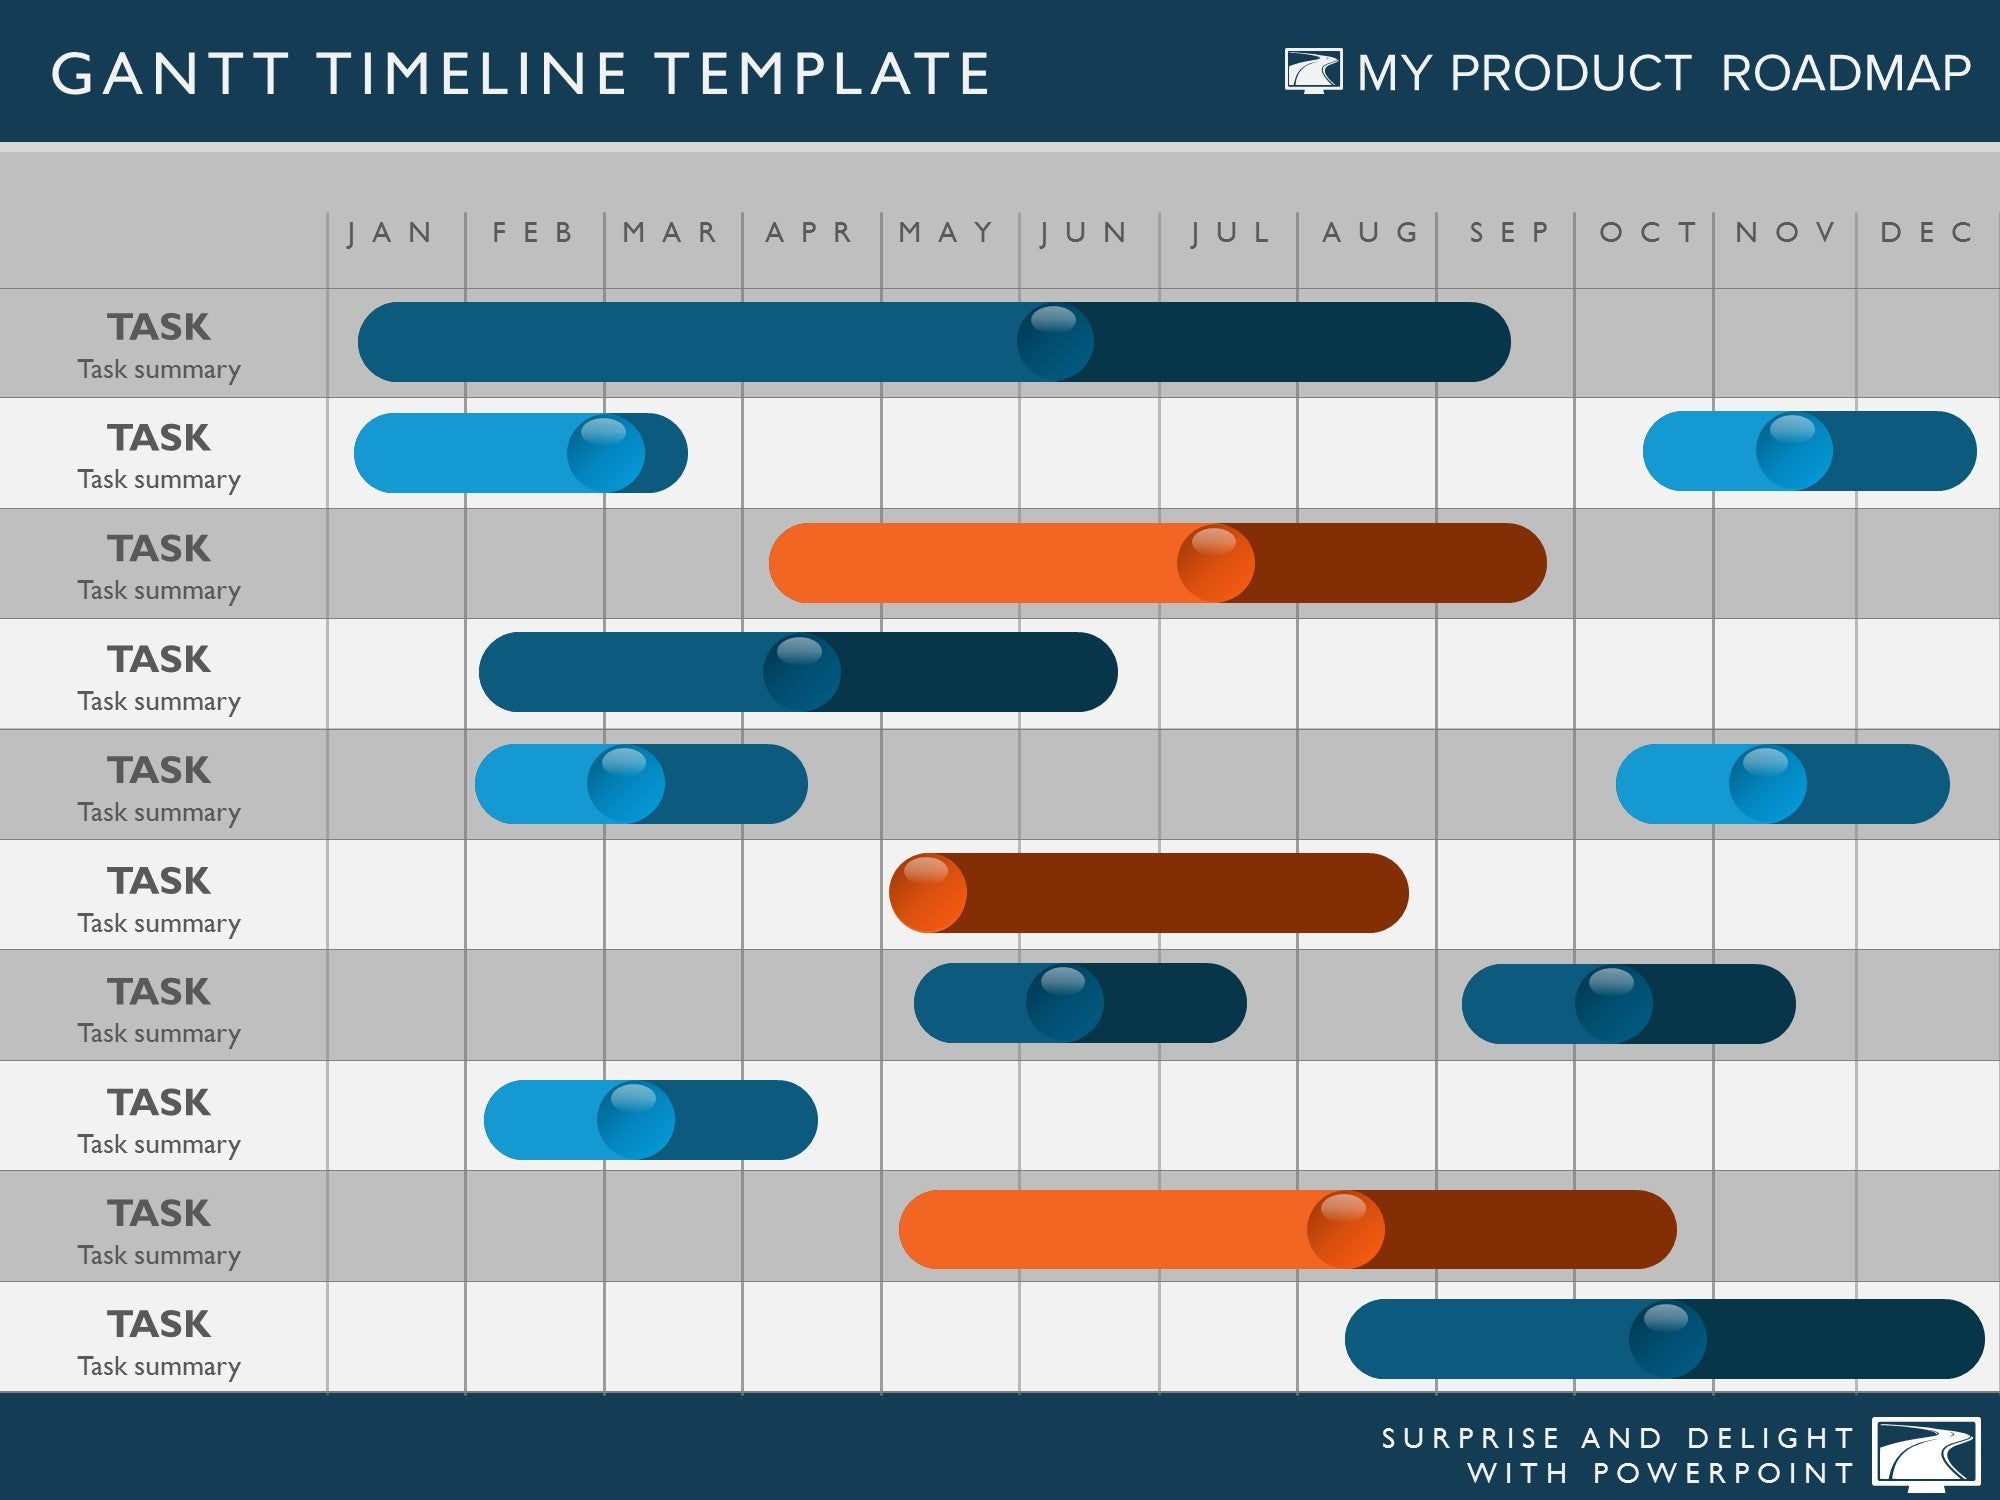 Twelve Phase Powerpoint Timeline Graphic My Product Roadmap - Timeline graphic template